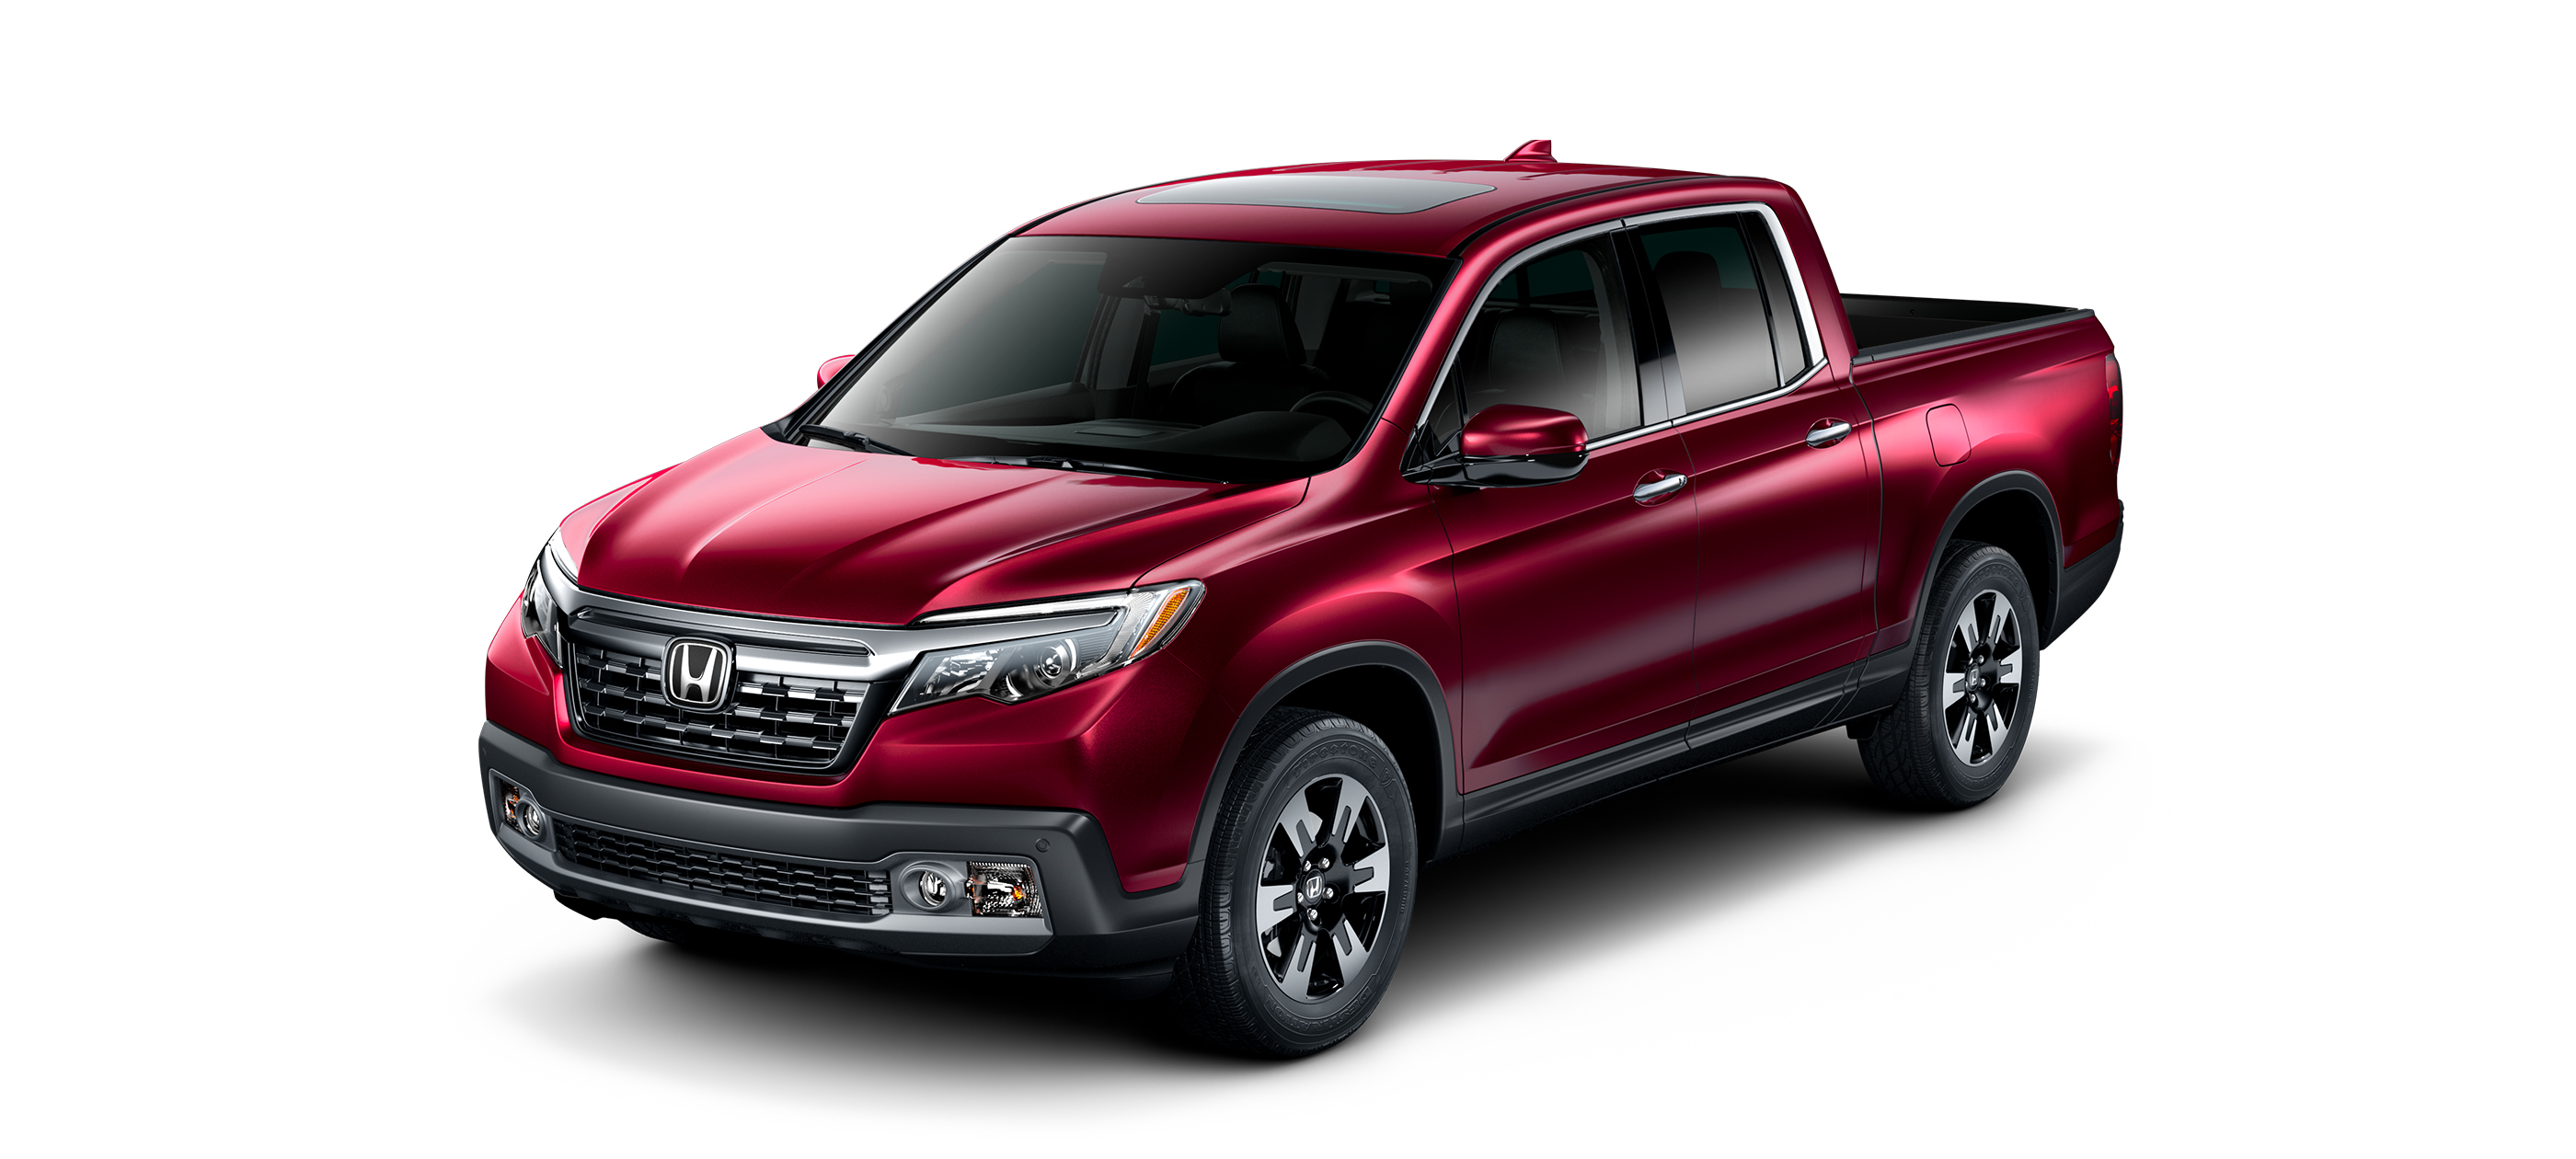 2019 Honda Ridgeline vs. Competition - Truck Comparison ...